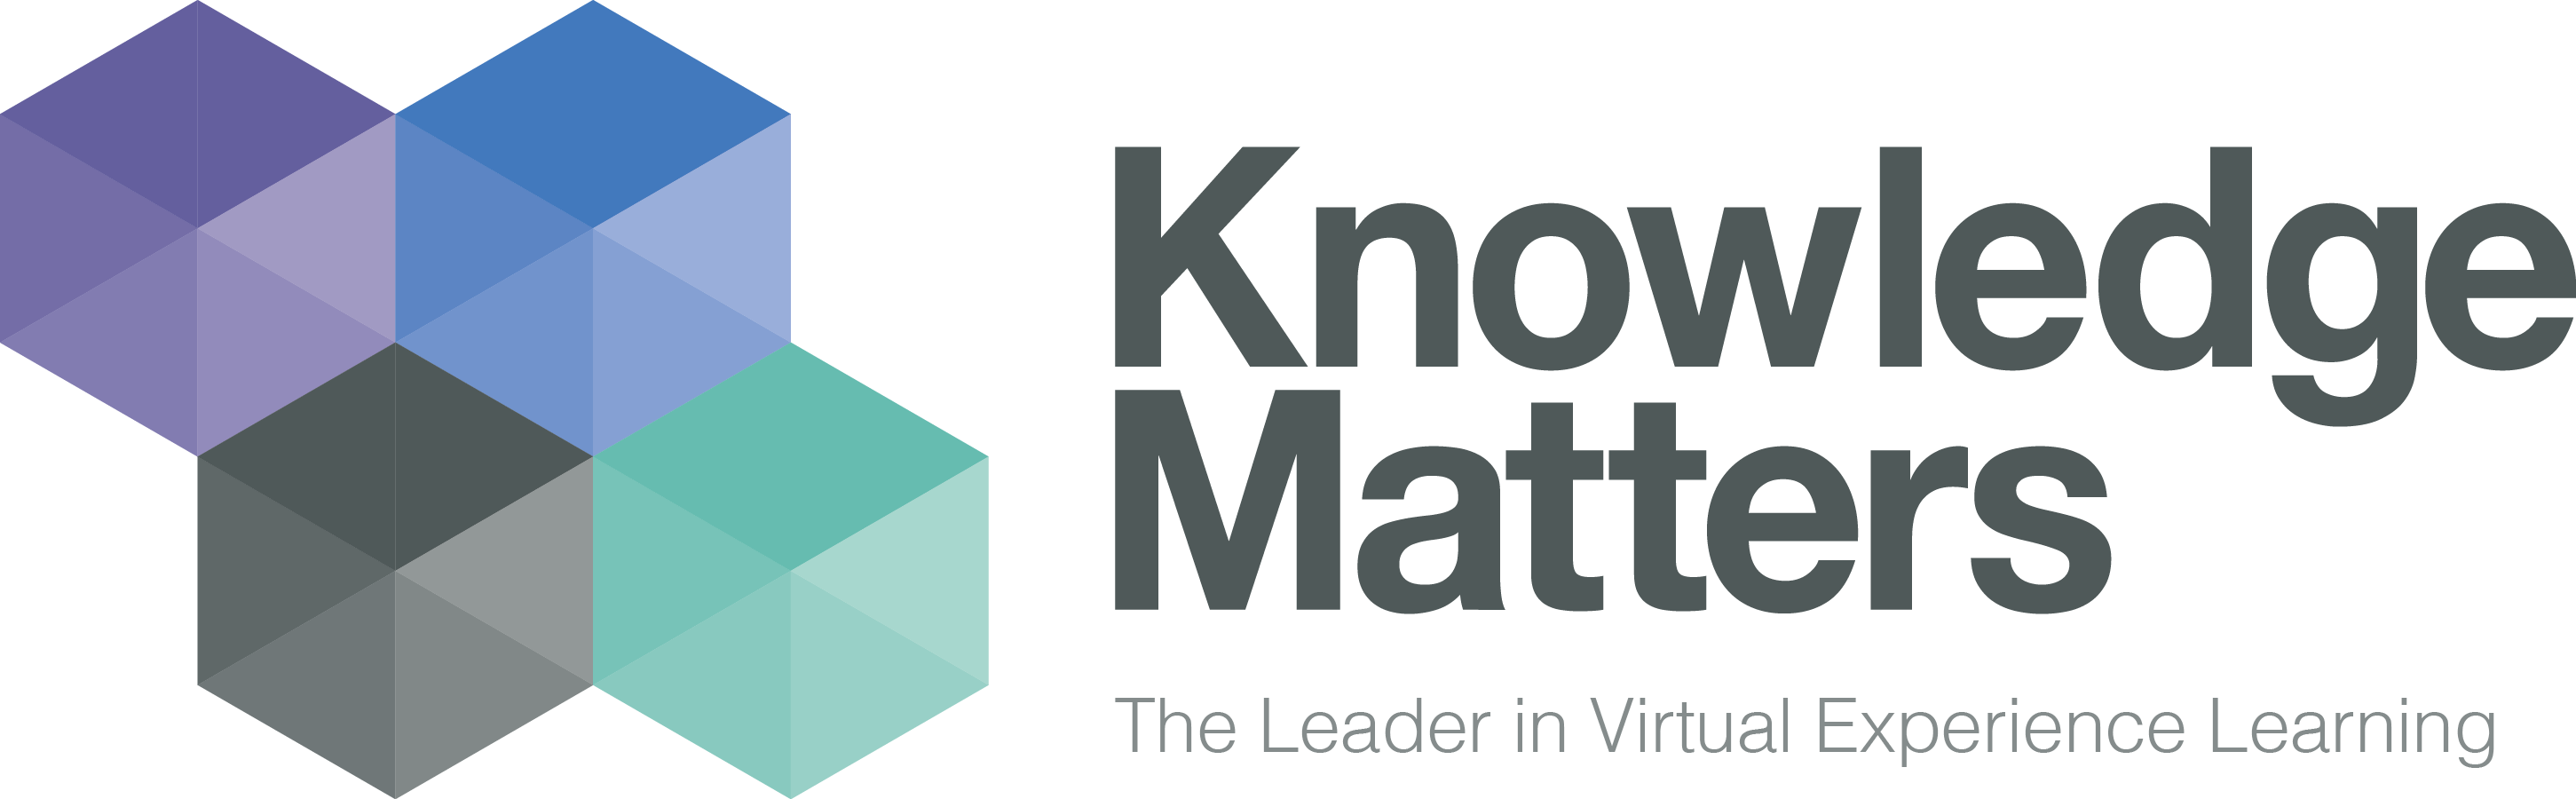 Knowledge Matters - The Leader in Virtual Experience Learning